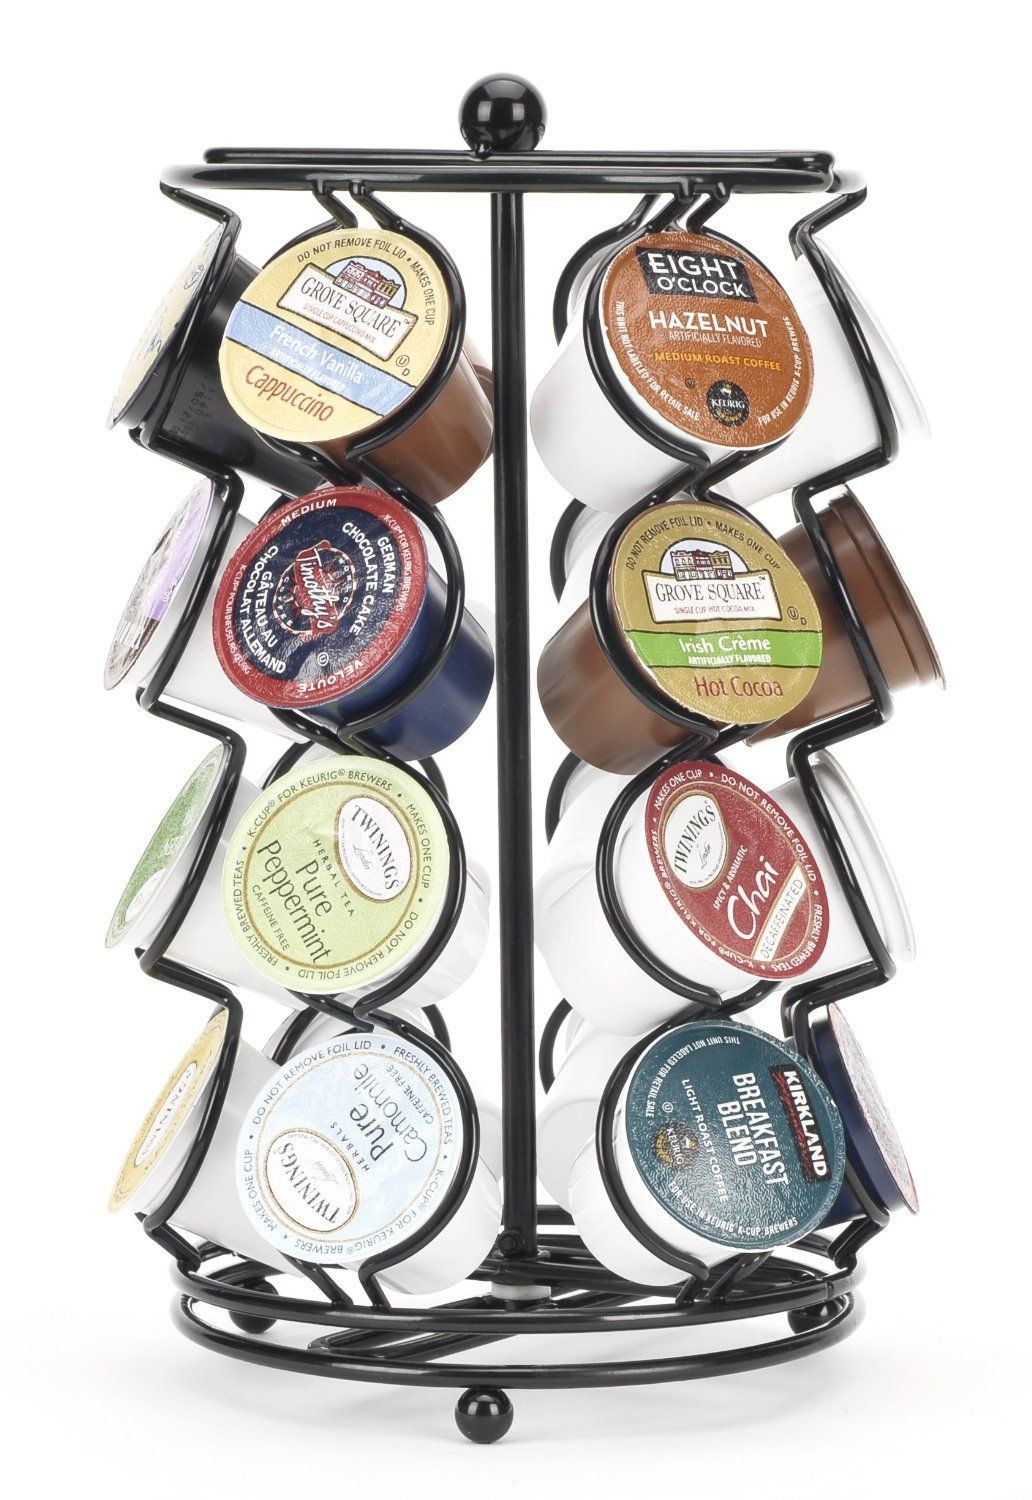 The Carousel K Cup Holder Is One Of The Popular Type Of Holder Due